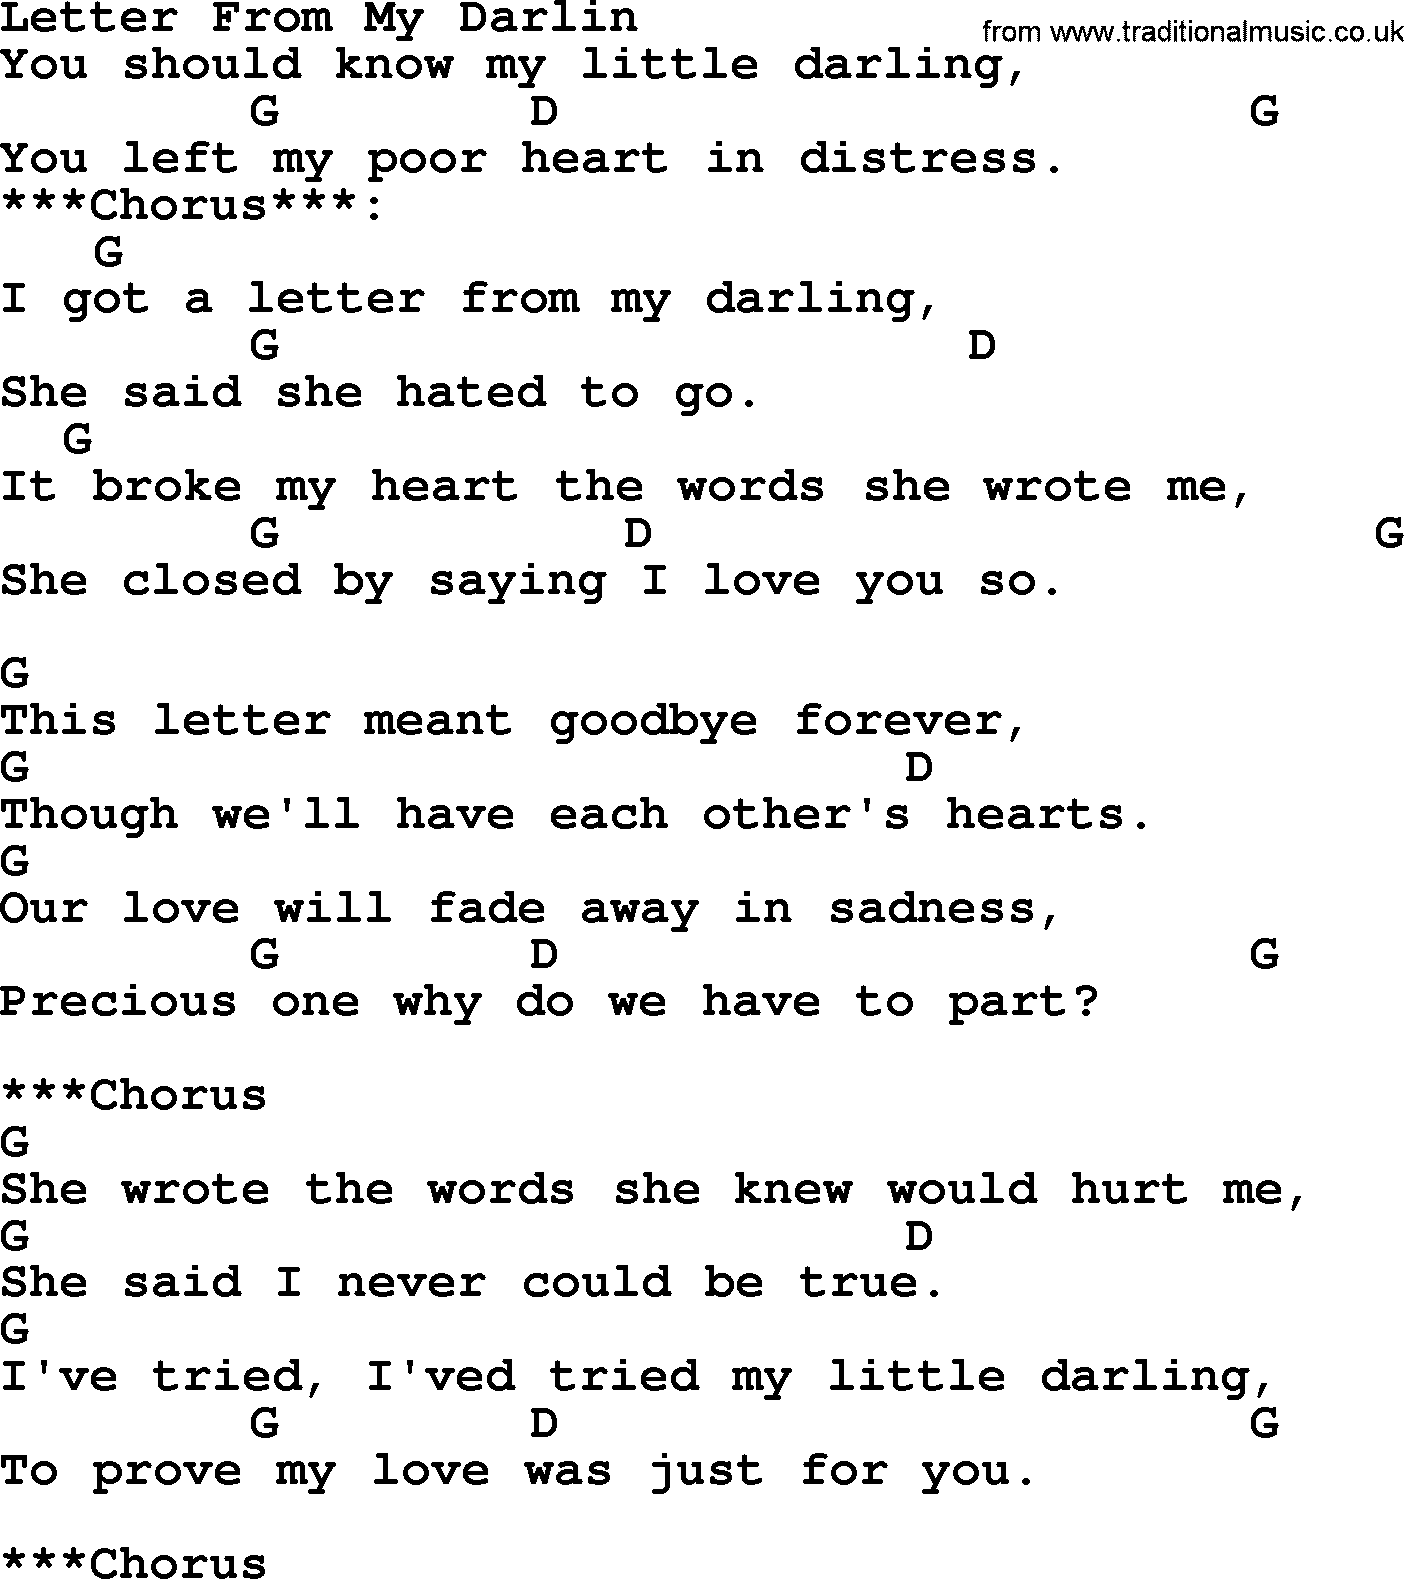 Letter From My Darlin - Bluegrass lyrics with chords